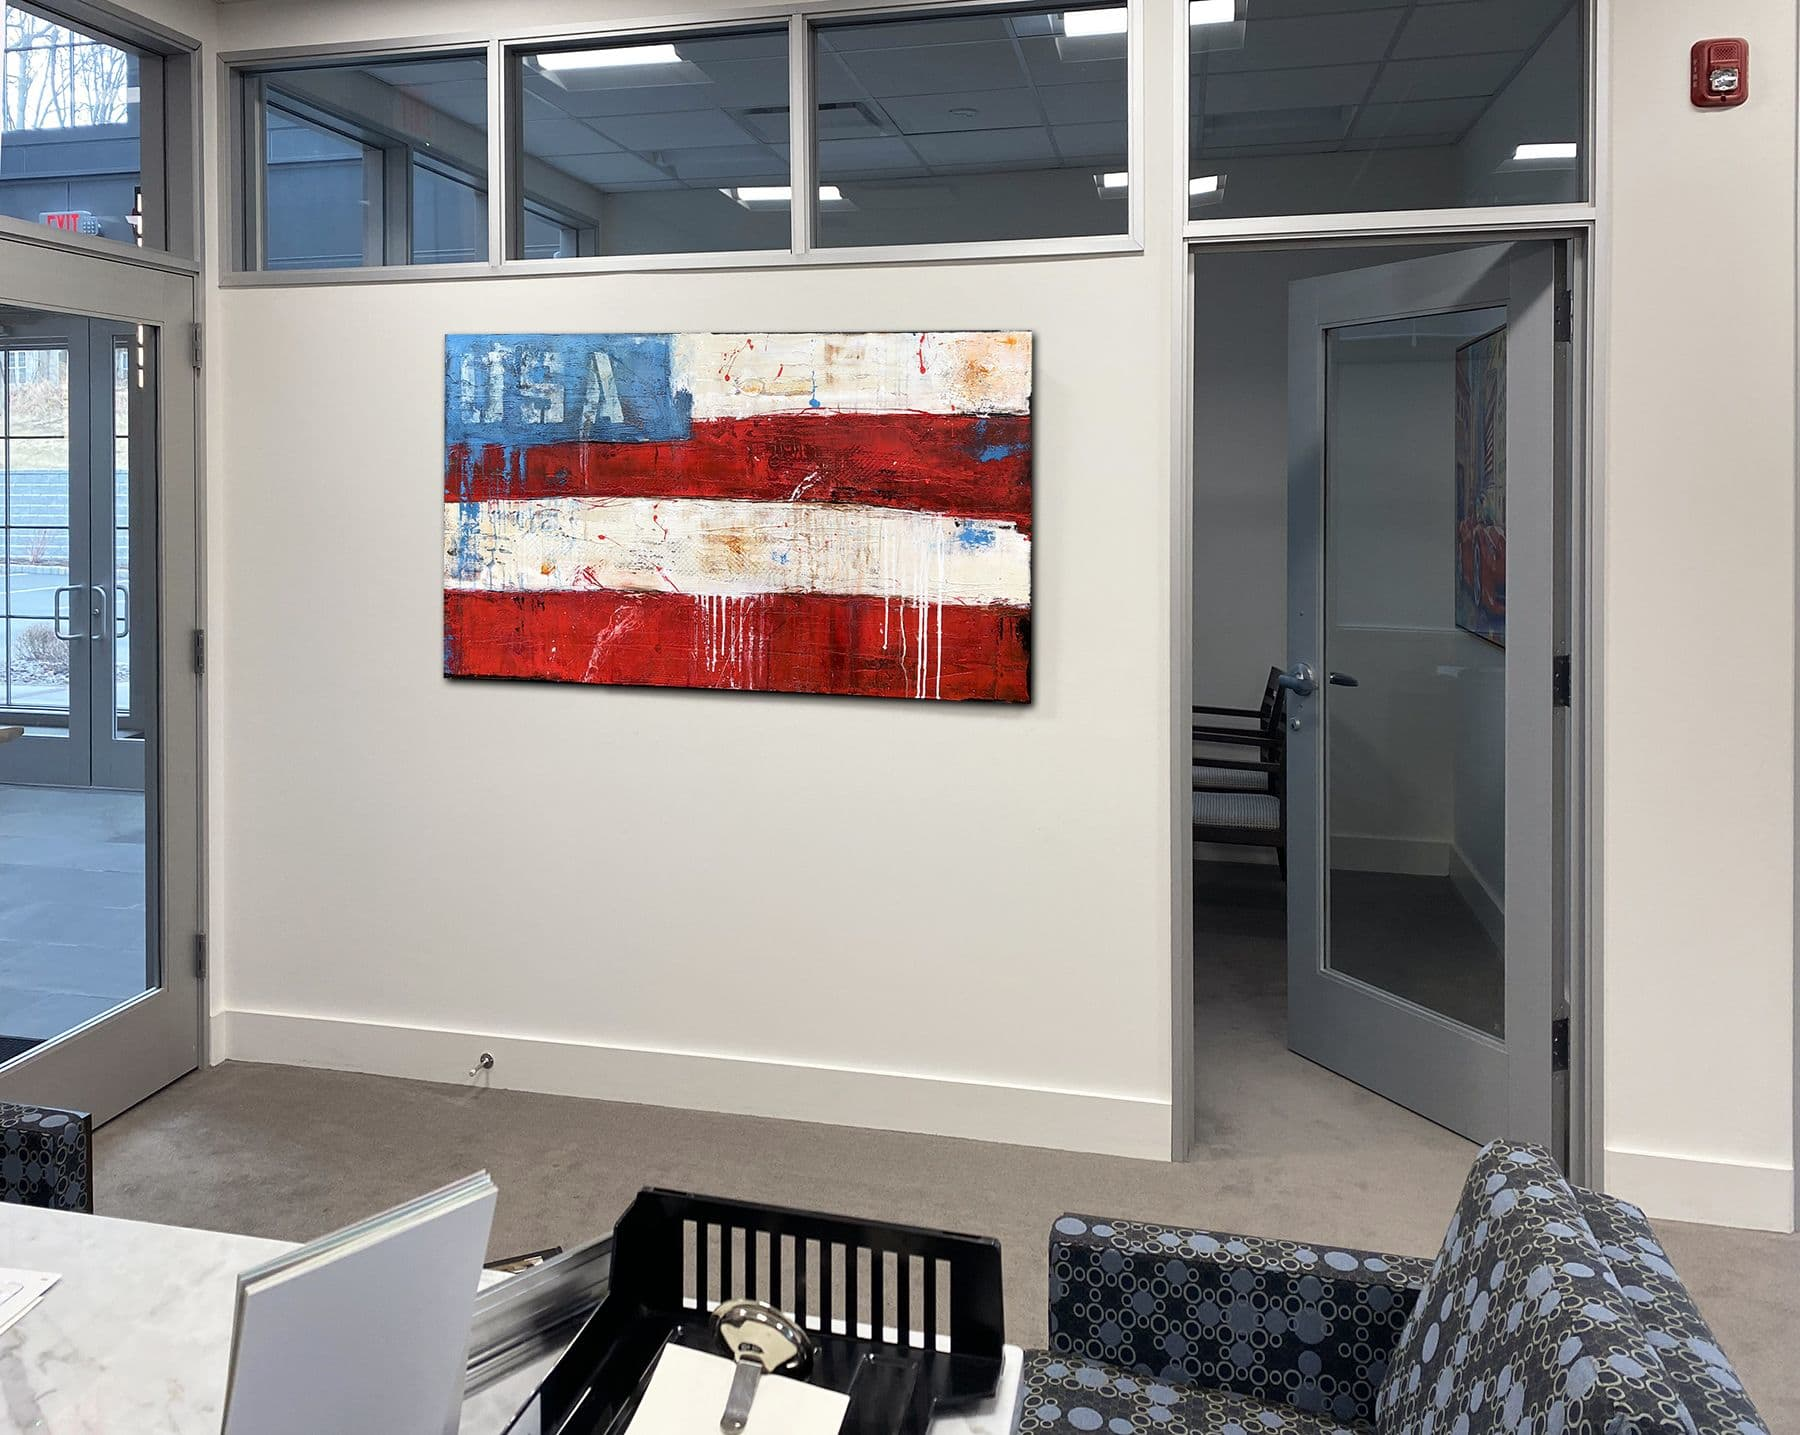 Paintings by ERIN ASHLEY seen at Milford, Milford - Paintings created for Investment Advisors office